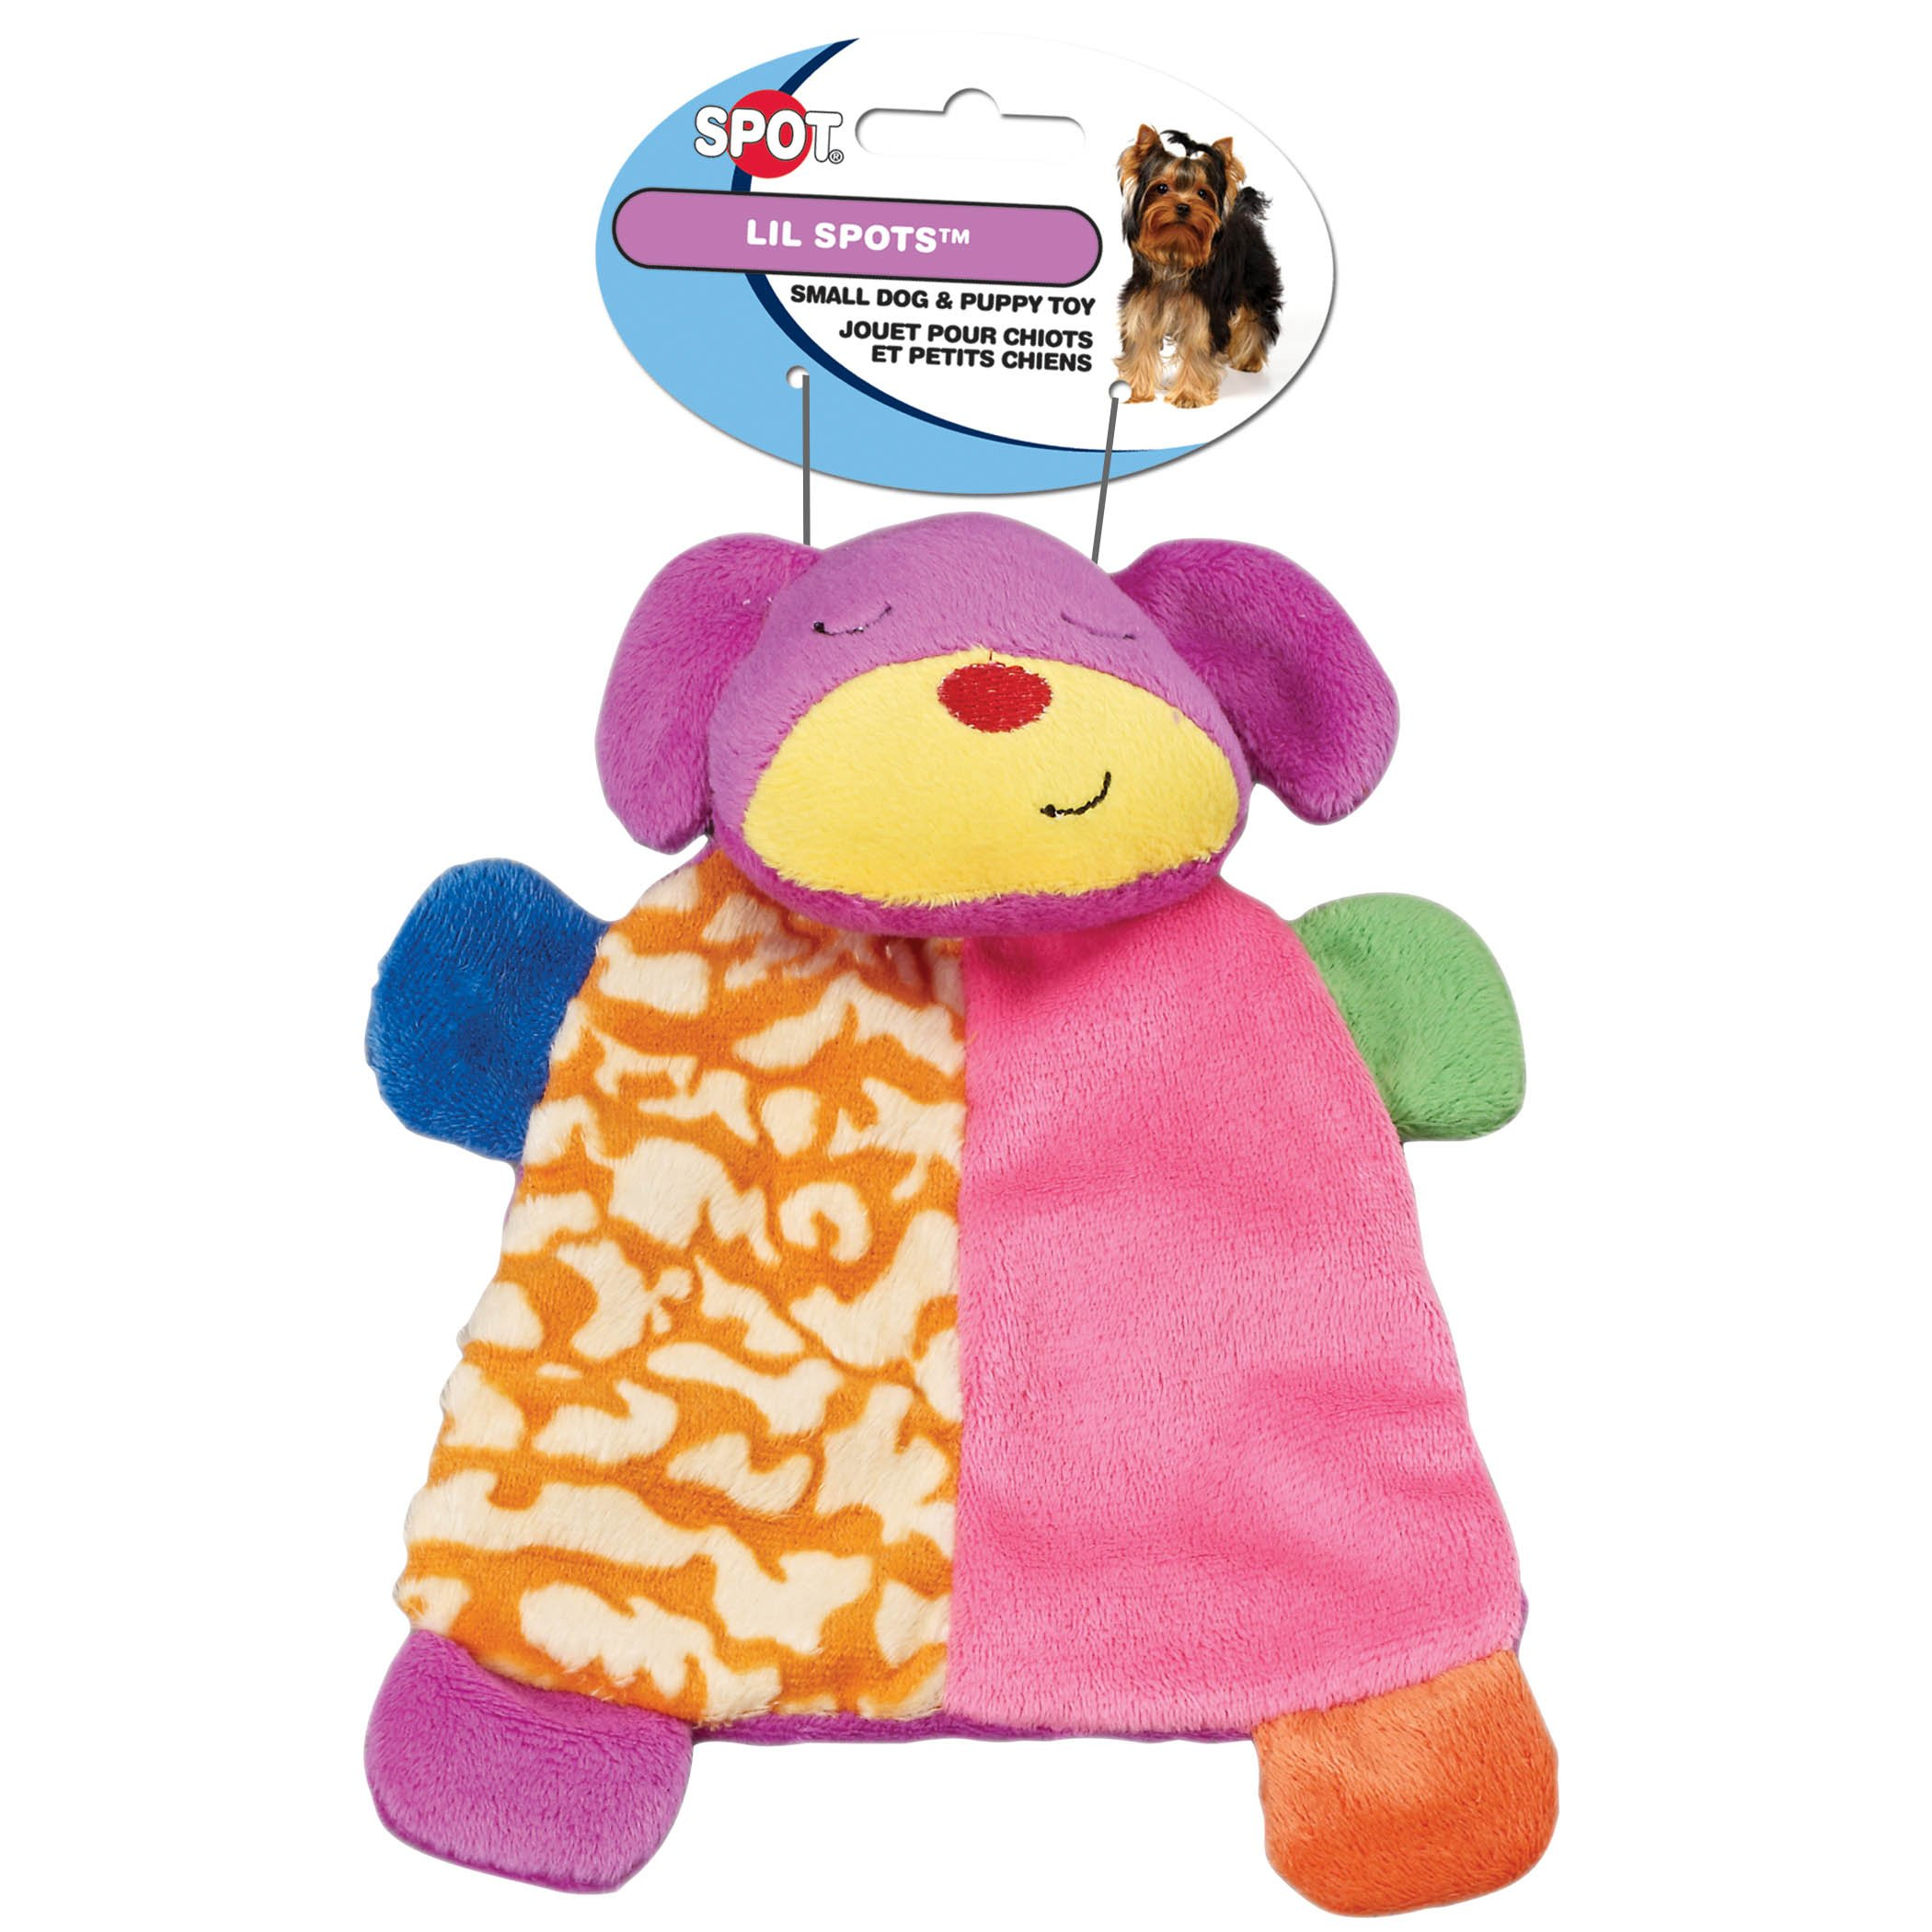 Spot Lil Spots Plush Blanket Toys for Small Dogs and Puppies Assorted 7